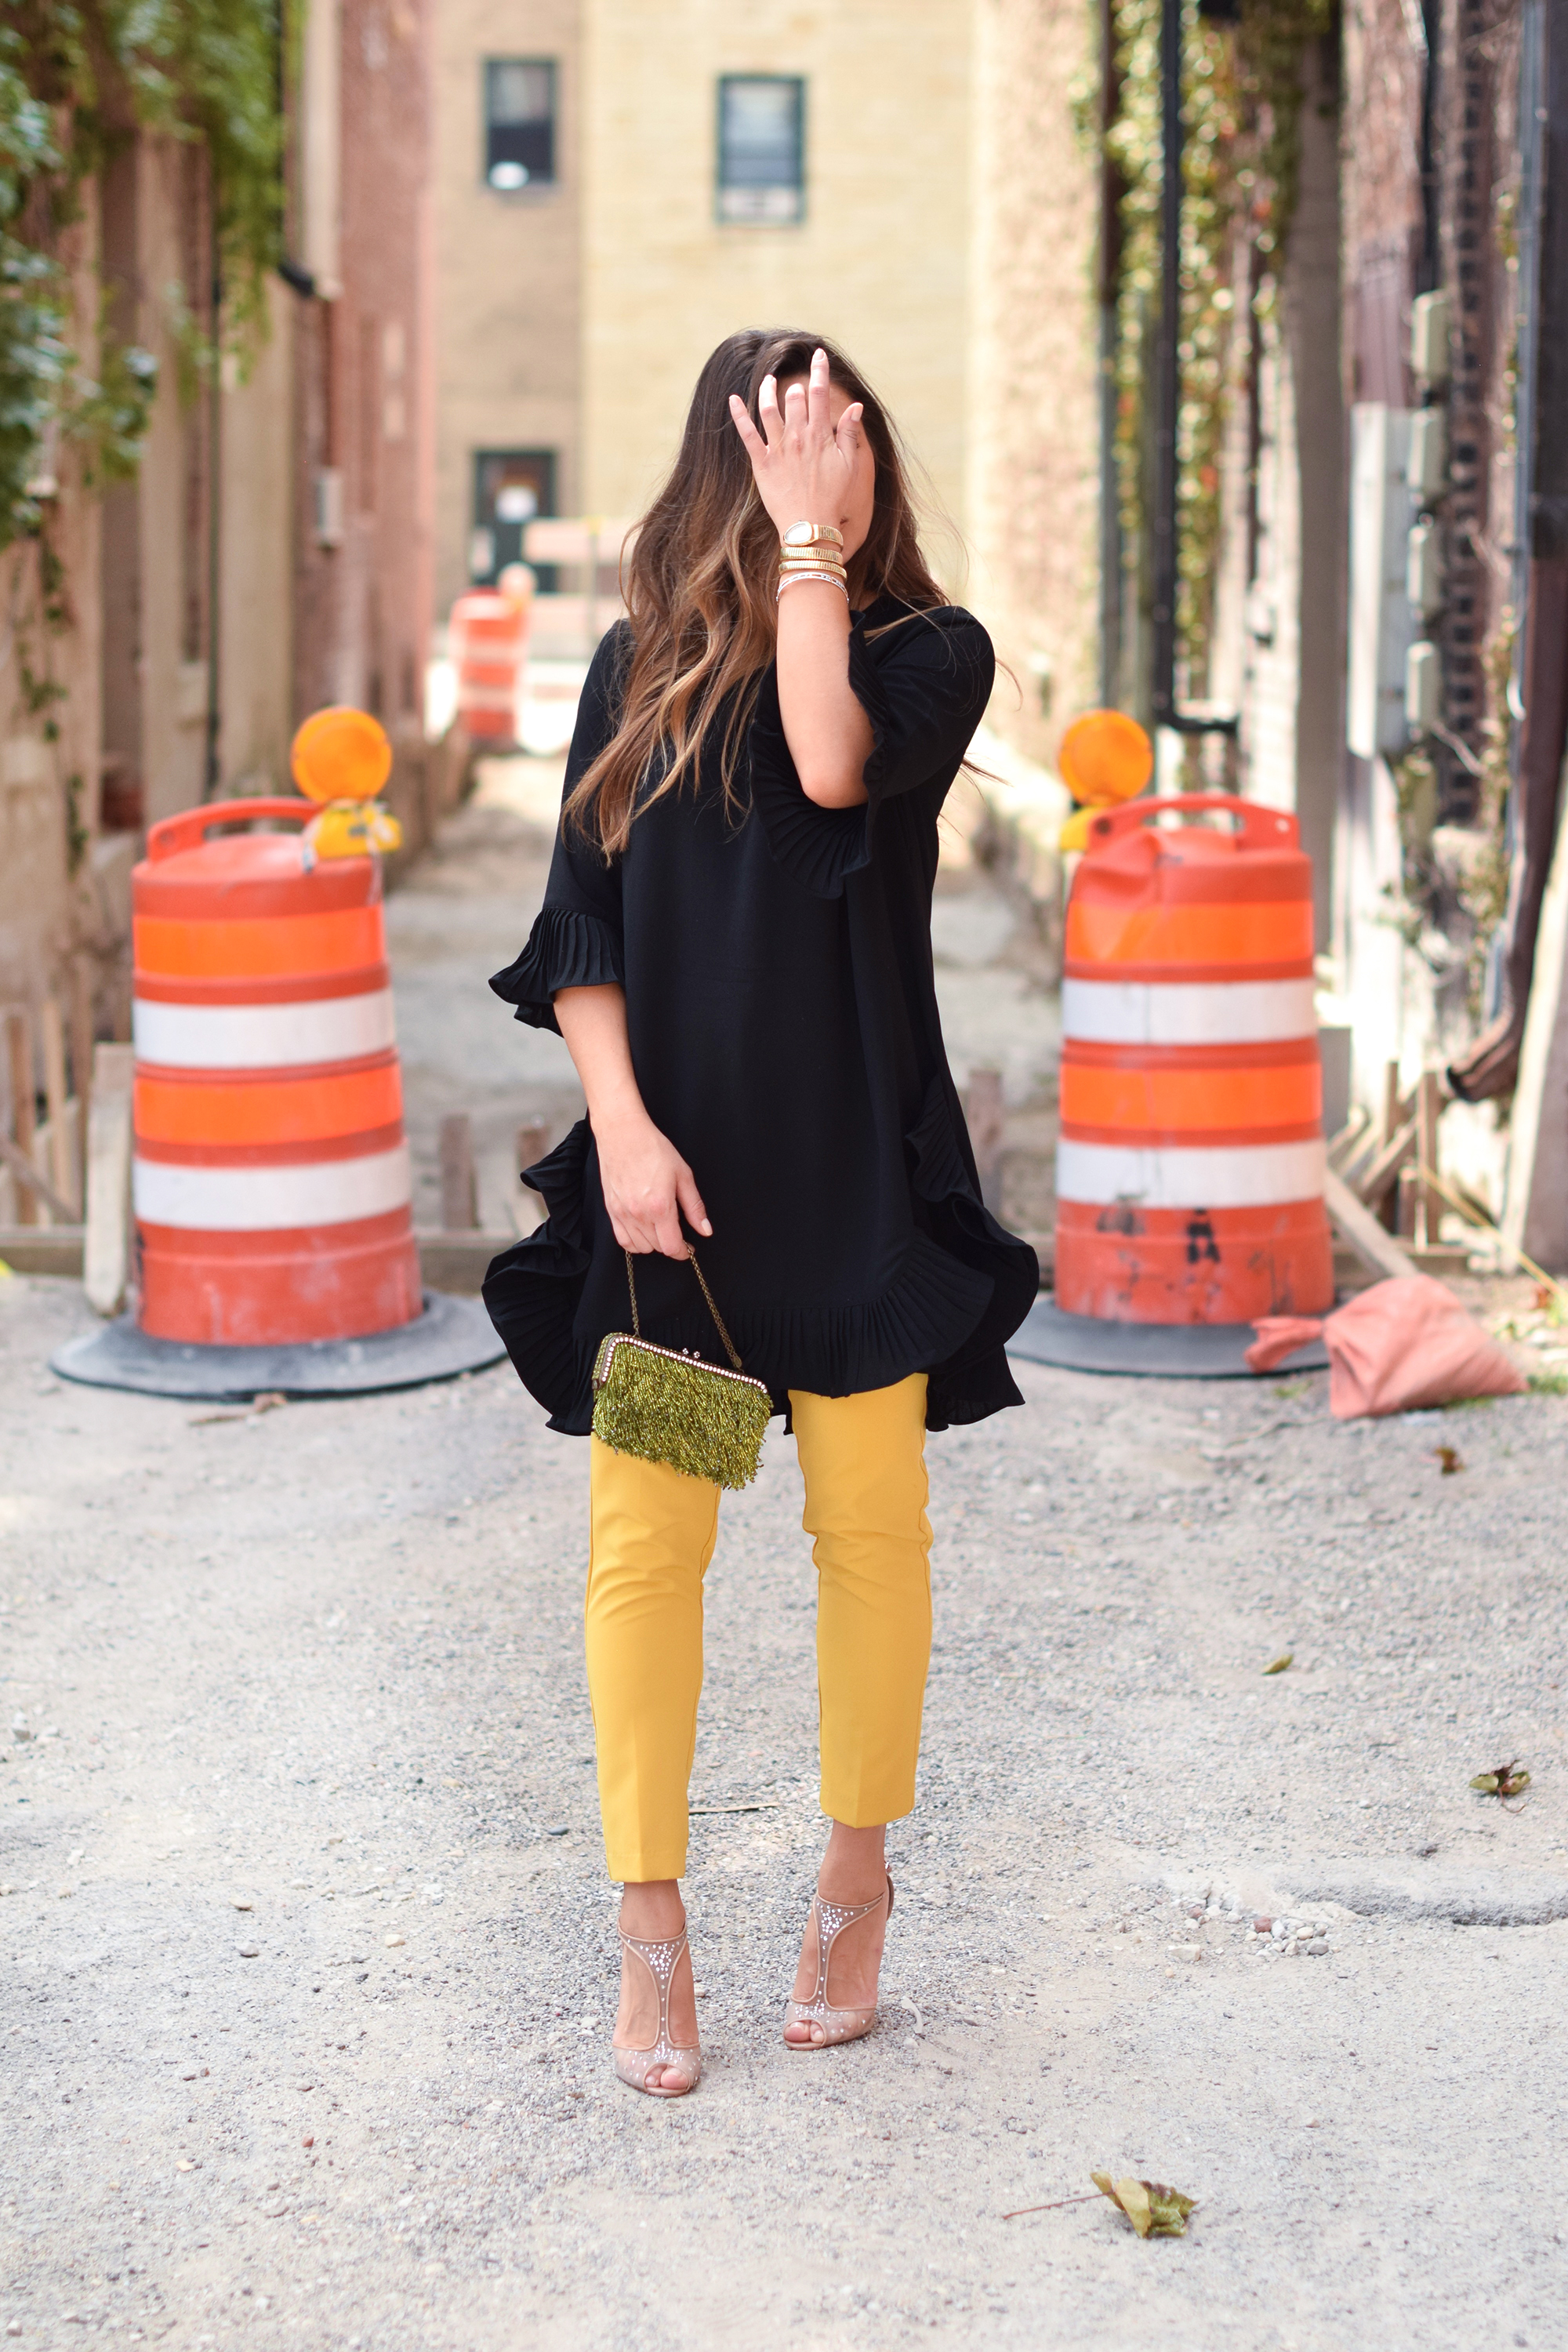 dress-over-pants-chic-outfit-idea